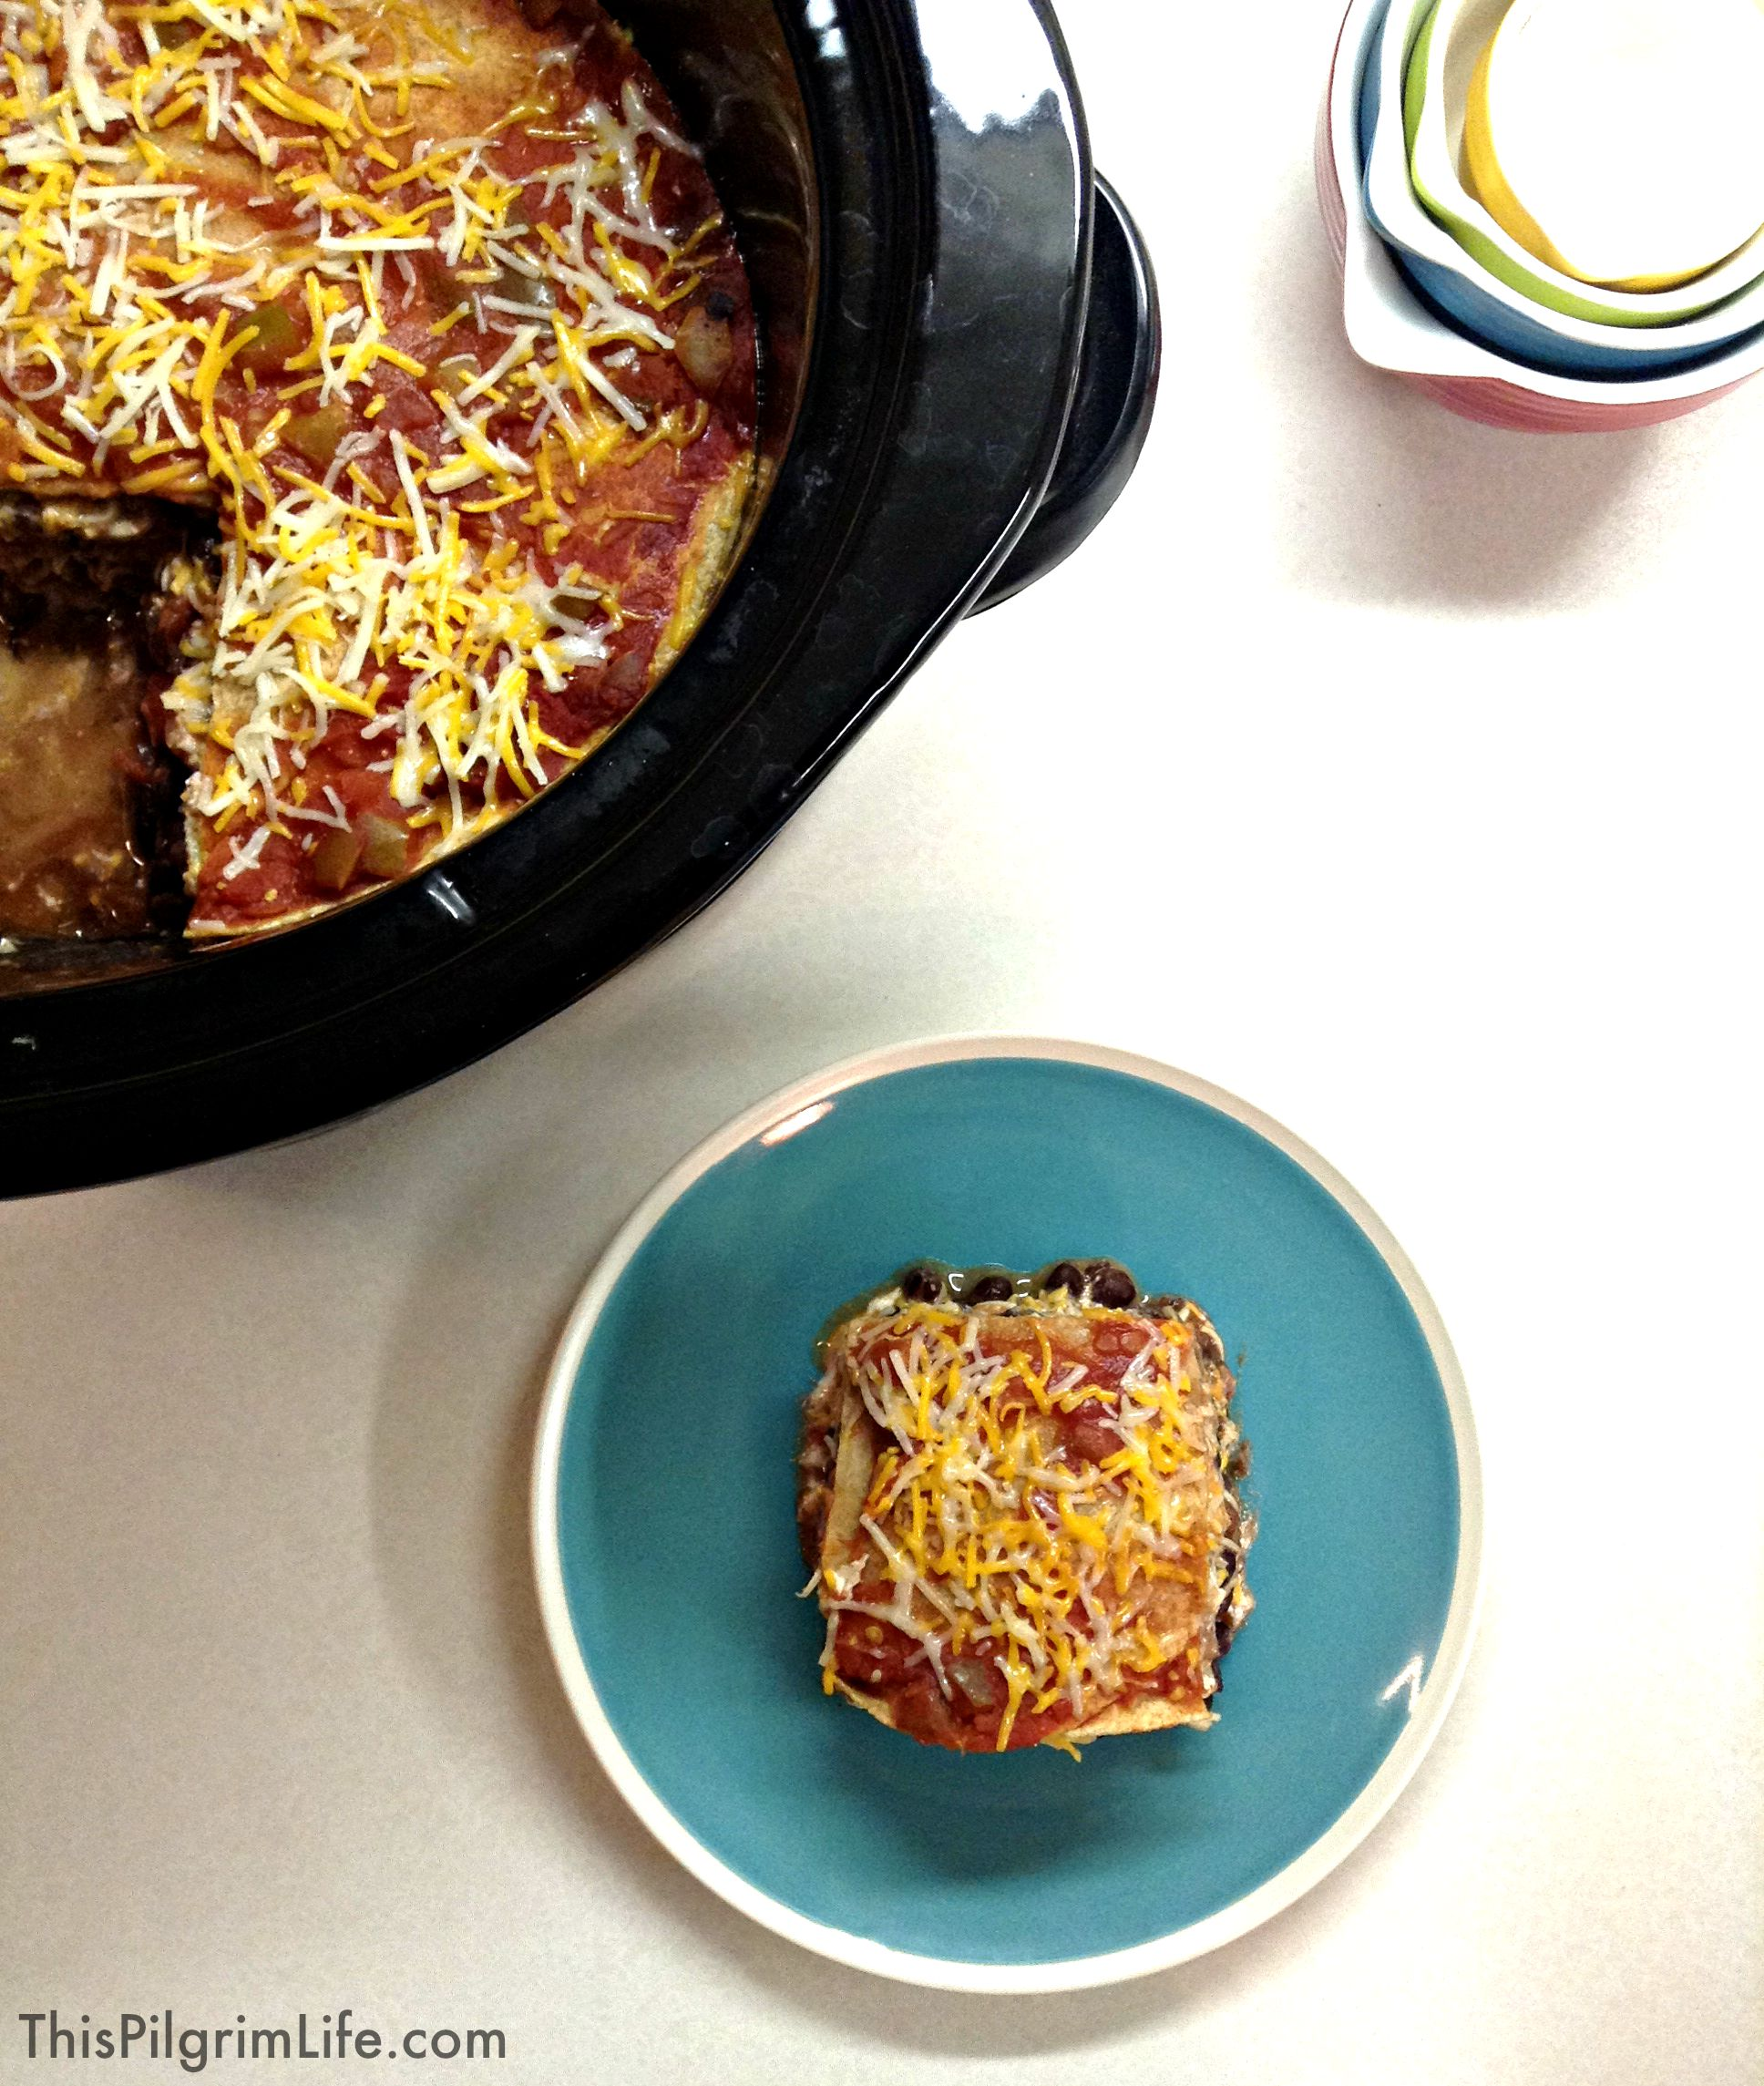 Such a simple and delicious recipe for Mexican lasagna made in the crockpot. Perfect for potlucks and sharing with friends!